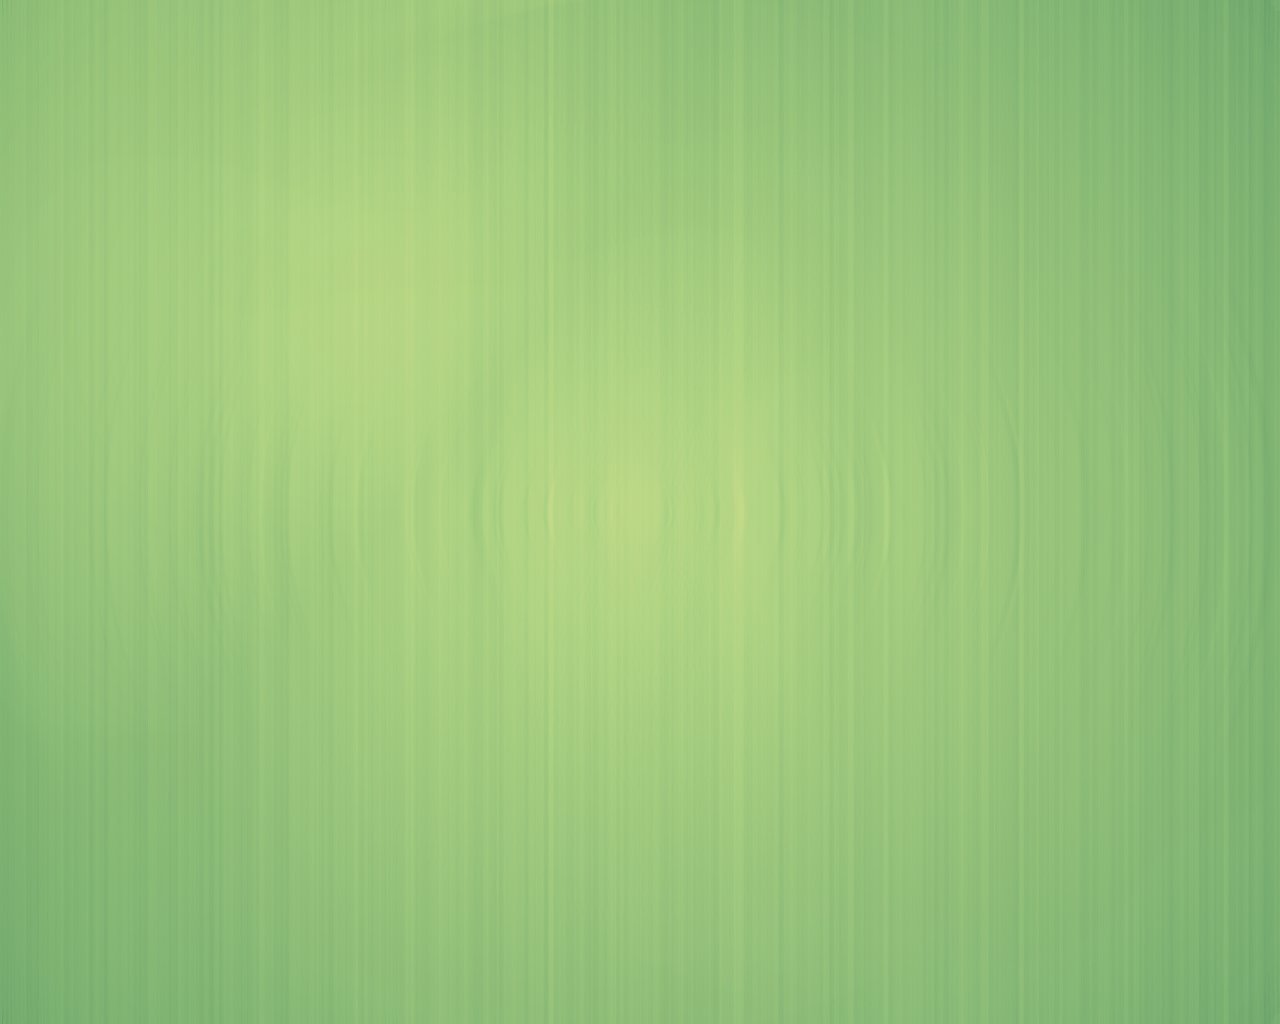 wallpaper stripes green4 by 10r